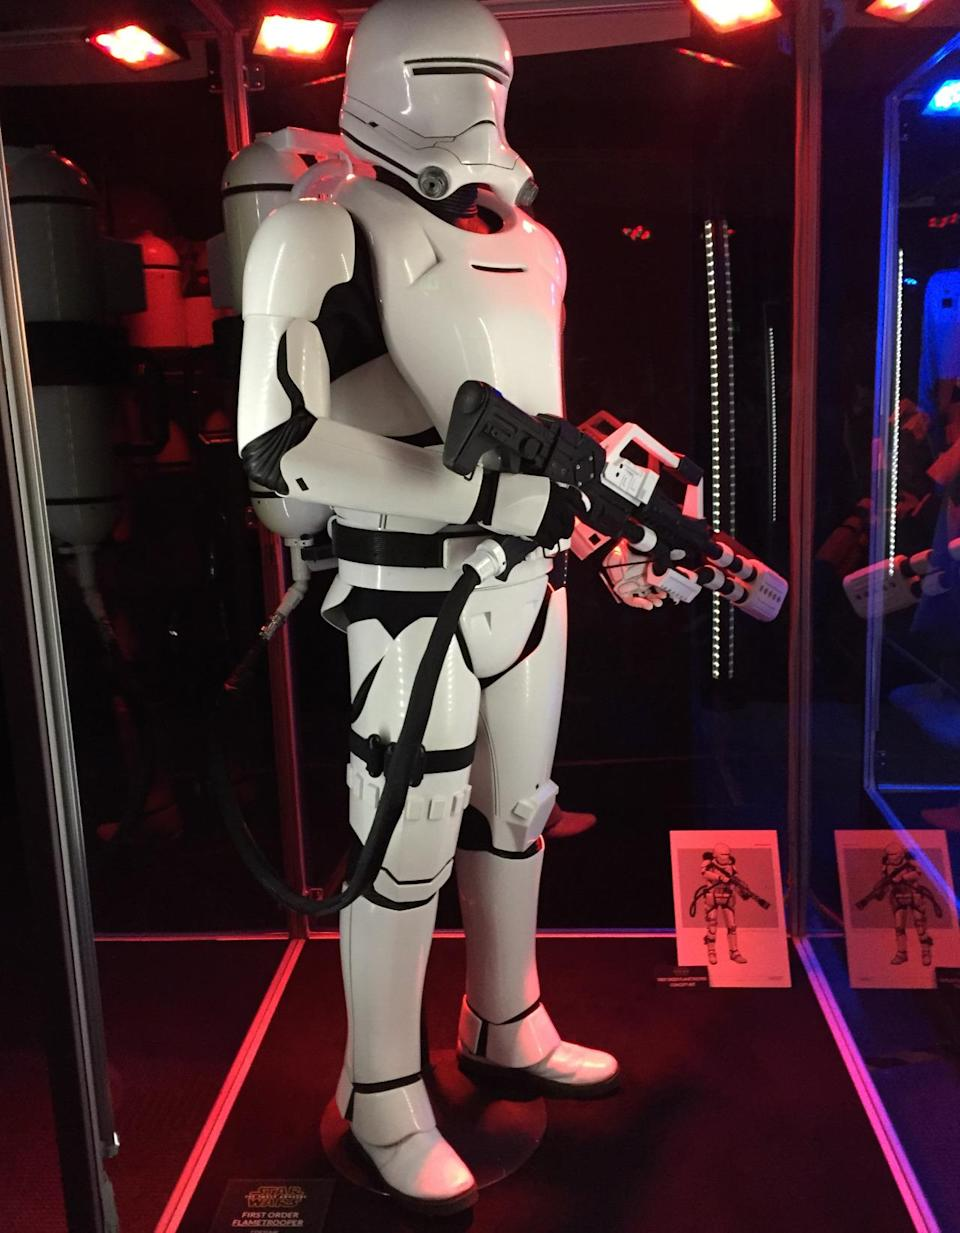 """<p>From the official description: """"Specialized Stormtroopers of the First Order, Flametroopers carry incendiary weapons that can transform any battlefield into an infernal blaze.""""</p>"""